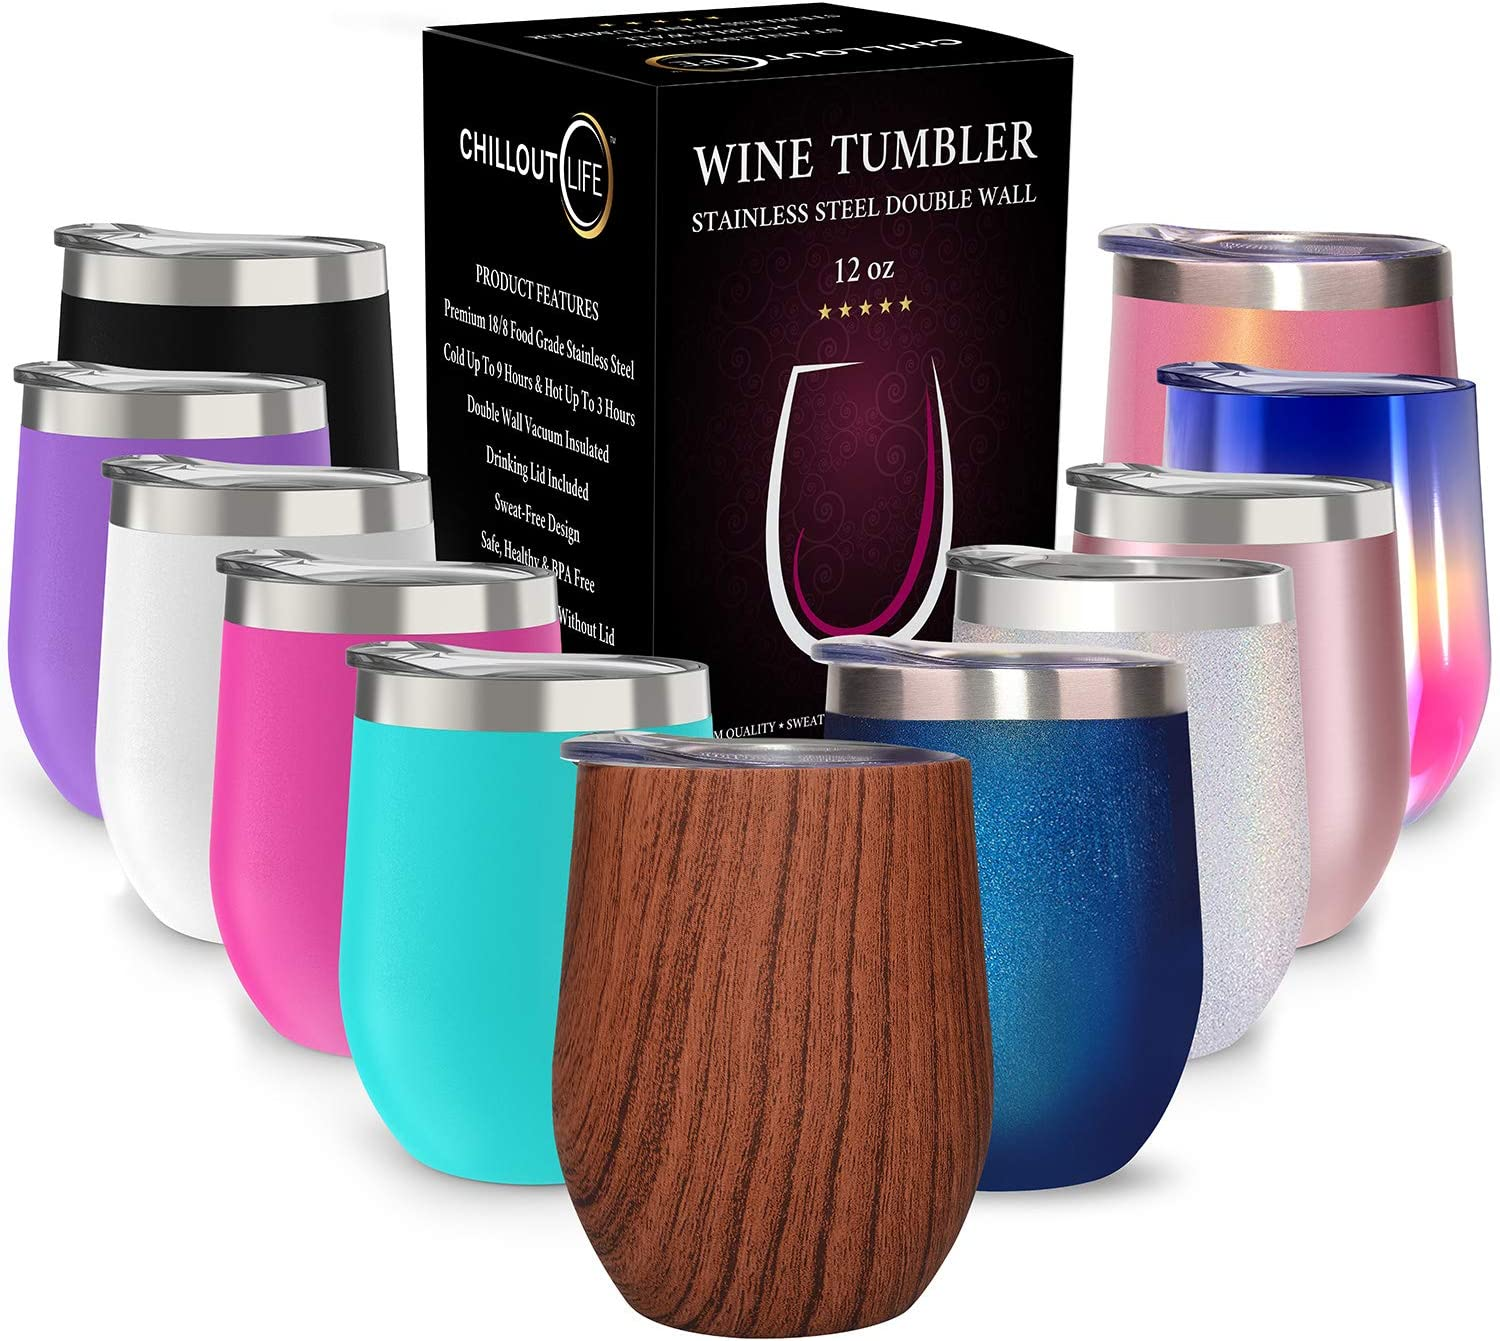 CHILLOUT LIFE 12 oz Stainless Steel Tumbler with Lid & Gift Box - Wine Tumbler Double Wall Vacuum Insulated Travel Tumbler Cup for Coffee, Wine, Cocktails, Ice Cream - Wood Color Tumbler